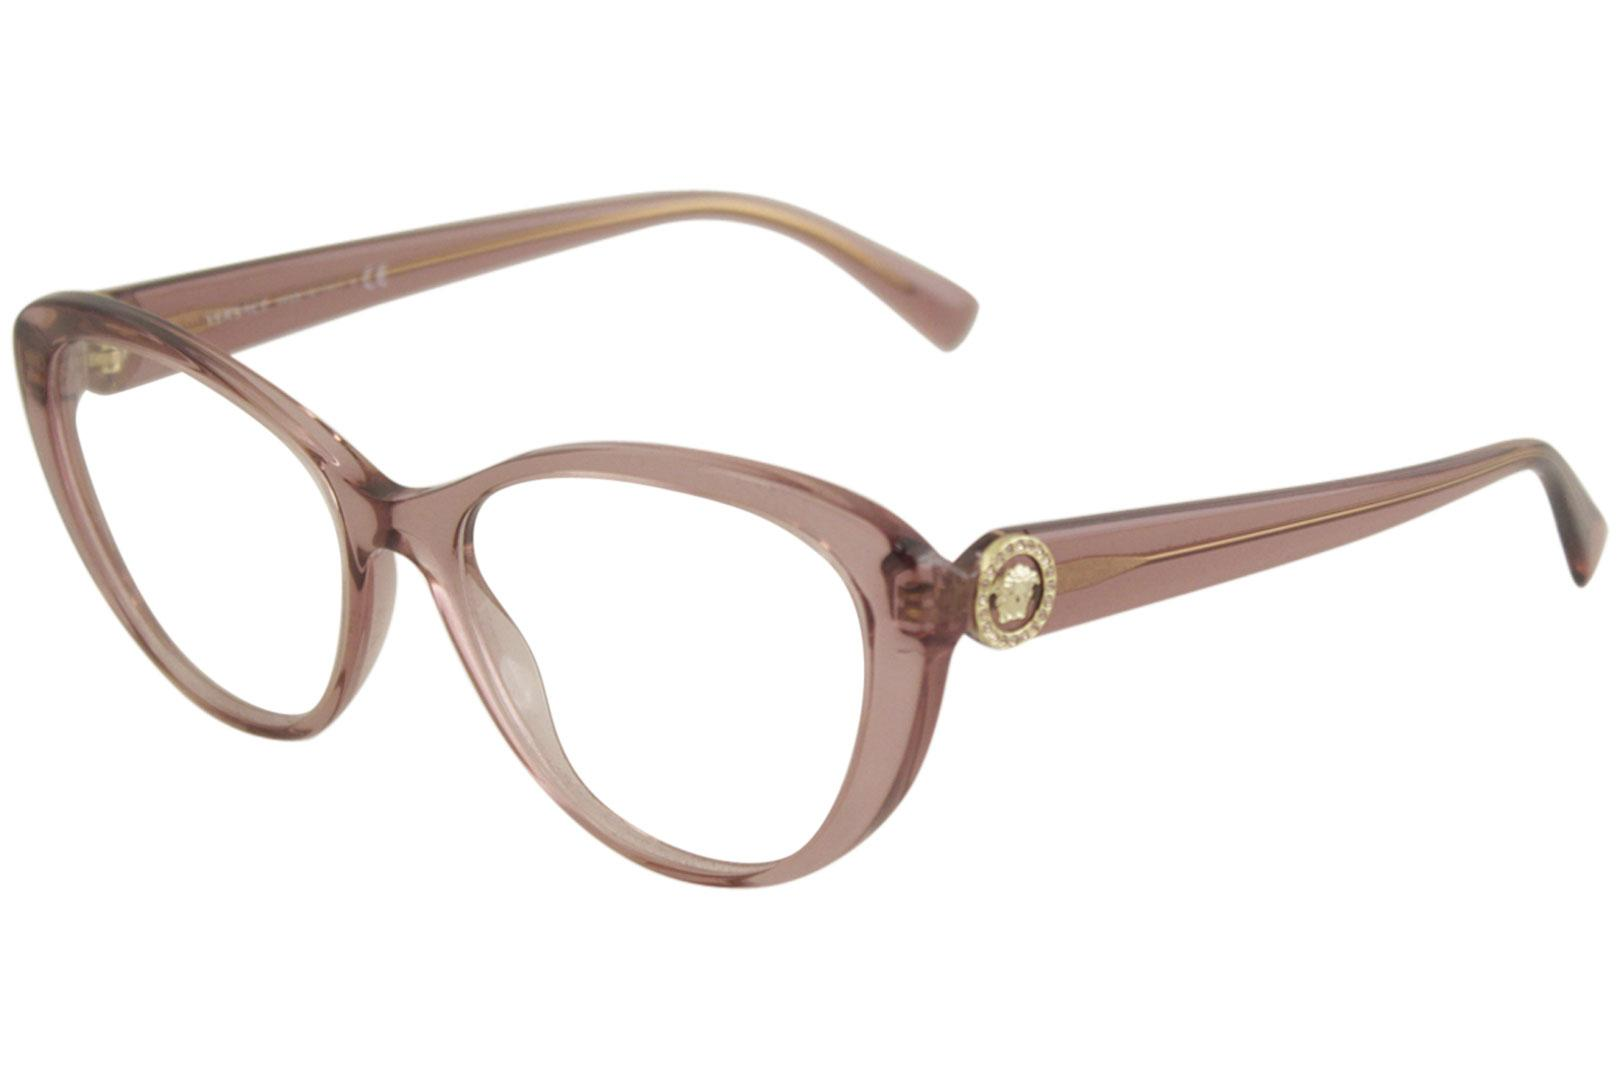 92fbc265432a Versace Women s Eyeglasses 3246 B Full Rim Optical Frame by Versace. 12345